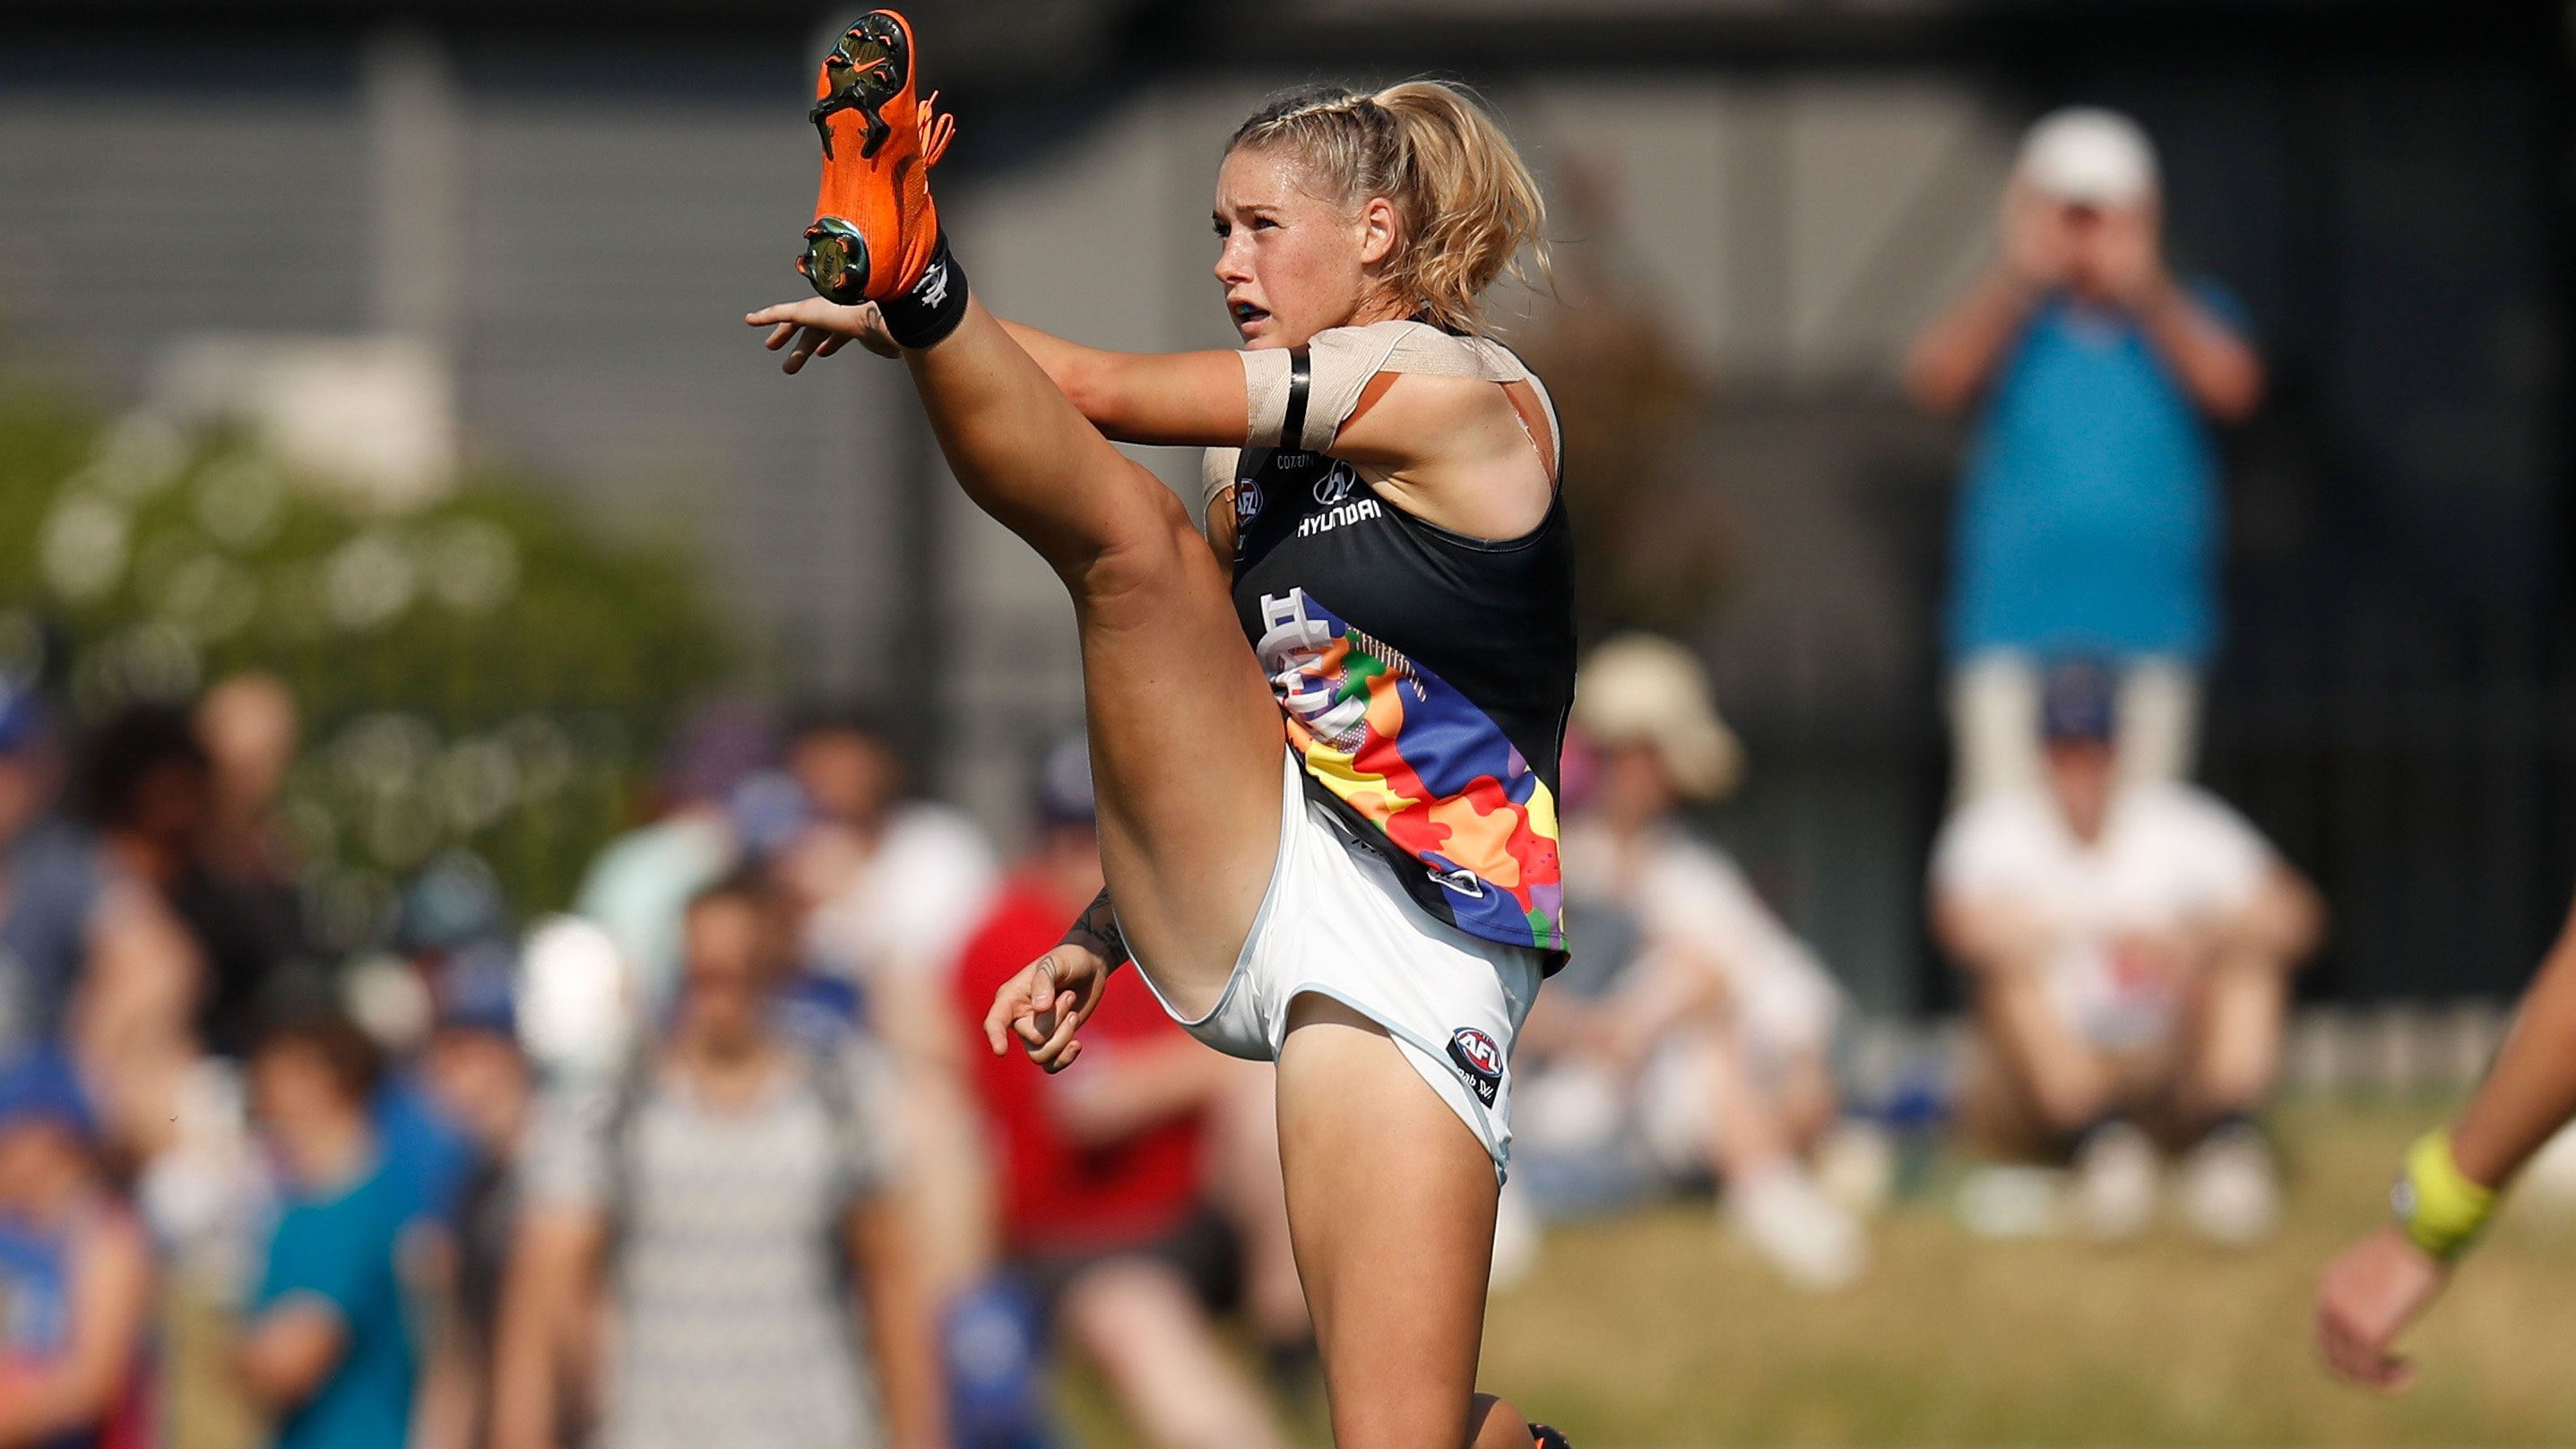 The photo that made Tayla Harris a household name.